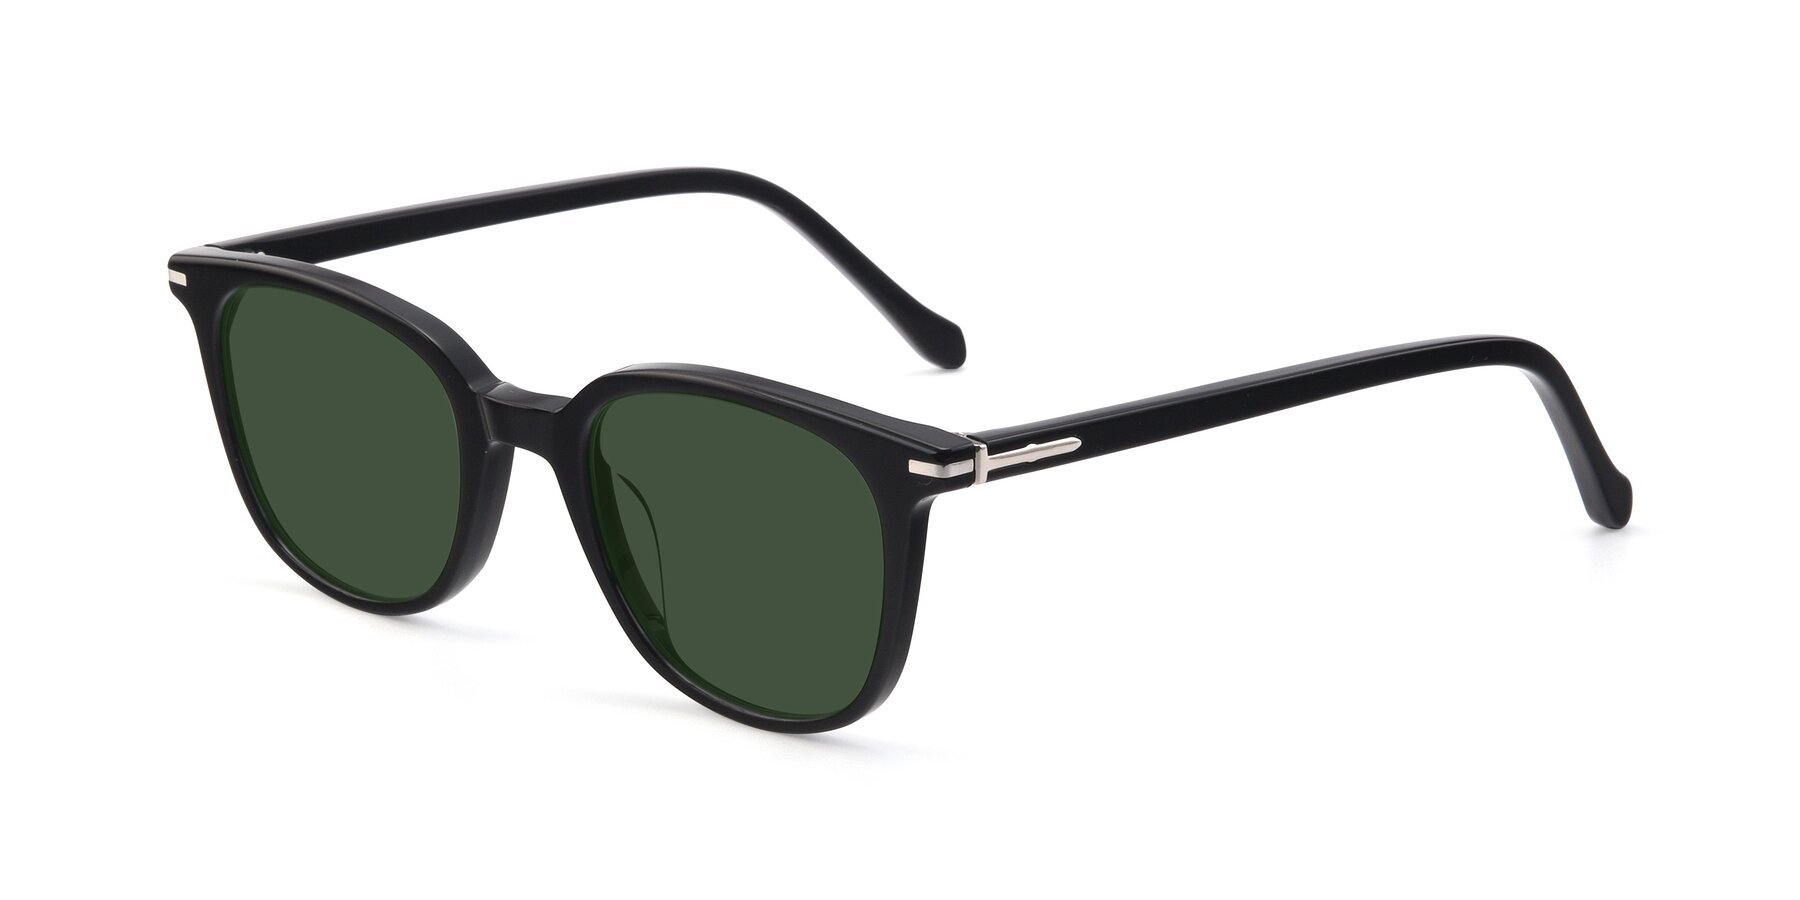 Angle of 17562 in Black with Green Tinted Lenses